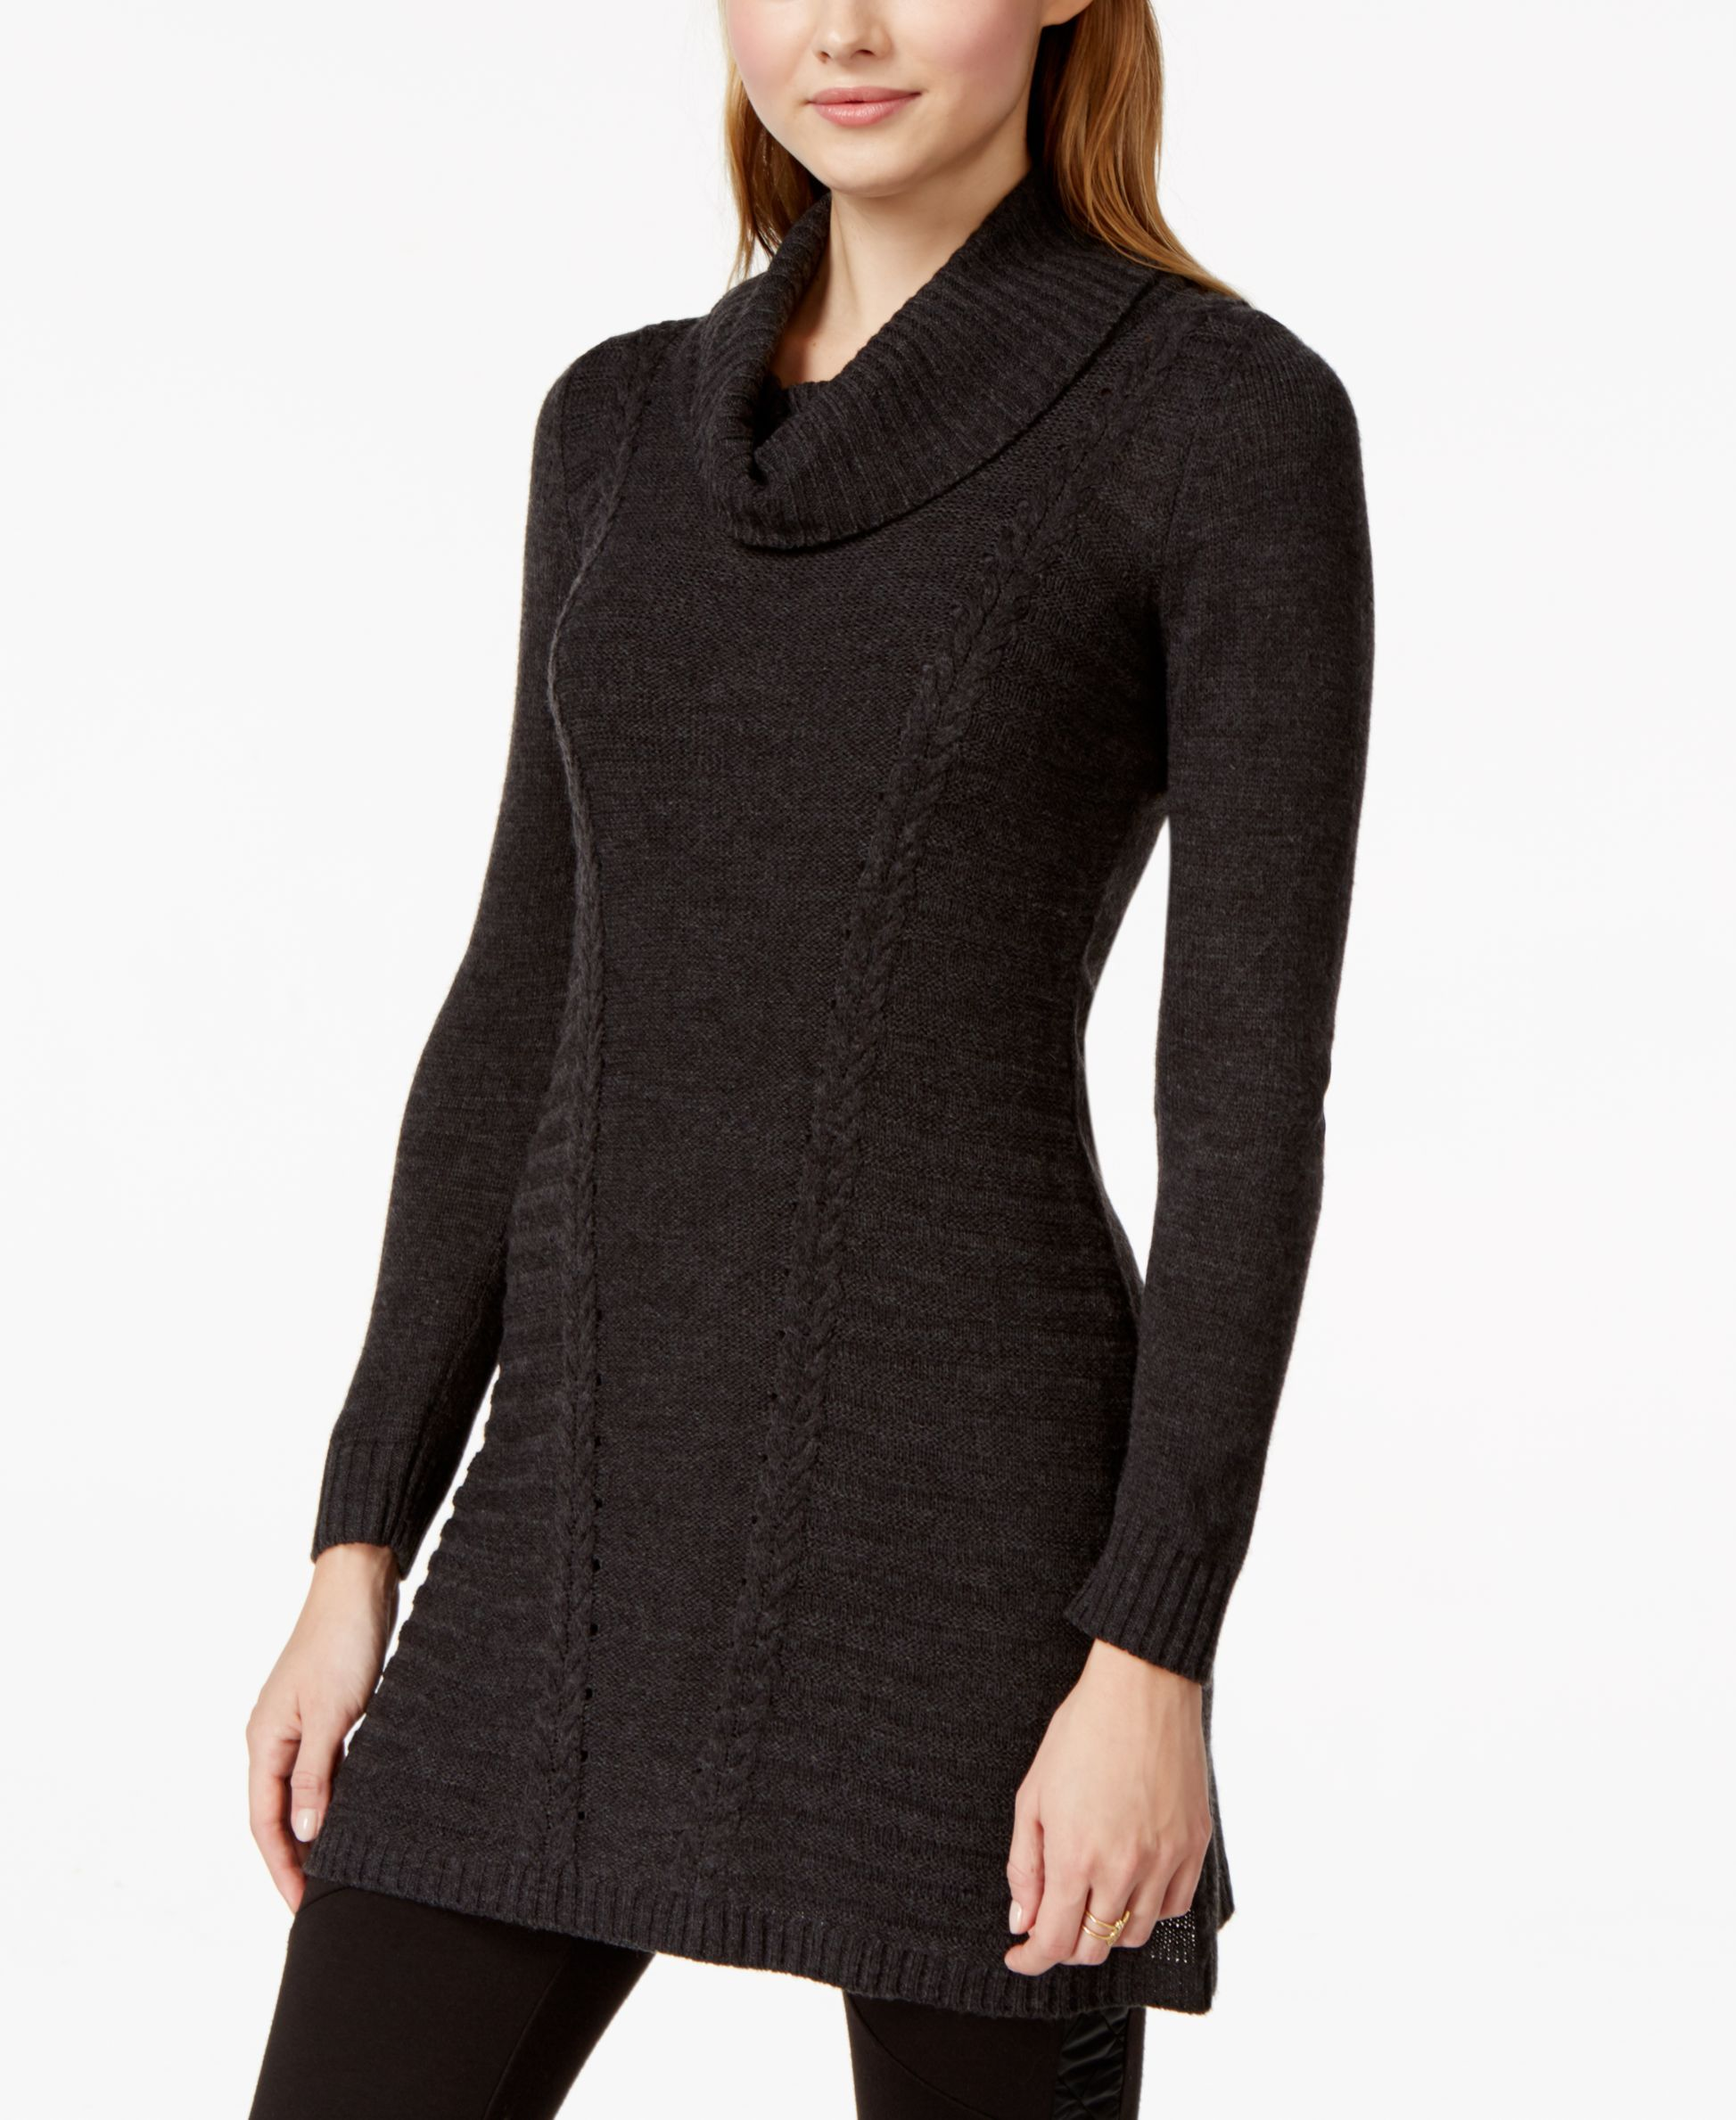 Bcx Juniors' Mixed-Knit Cowl-Neck Sweater Dress | Products ...